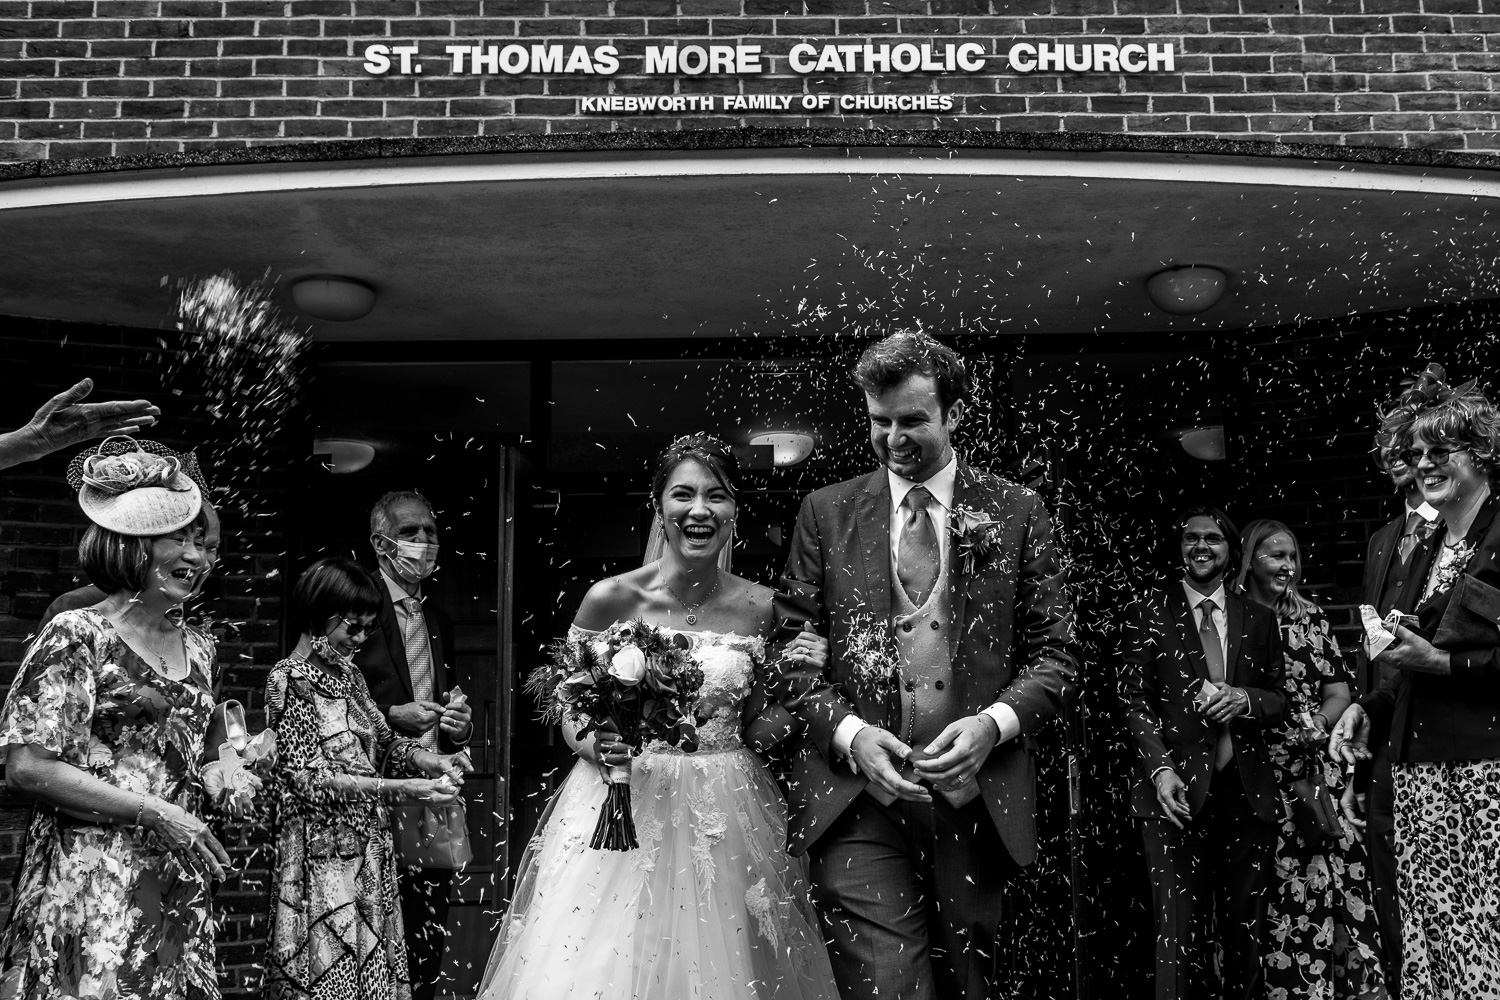 Bride and groom leaving the church while guests throw confetti